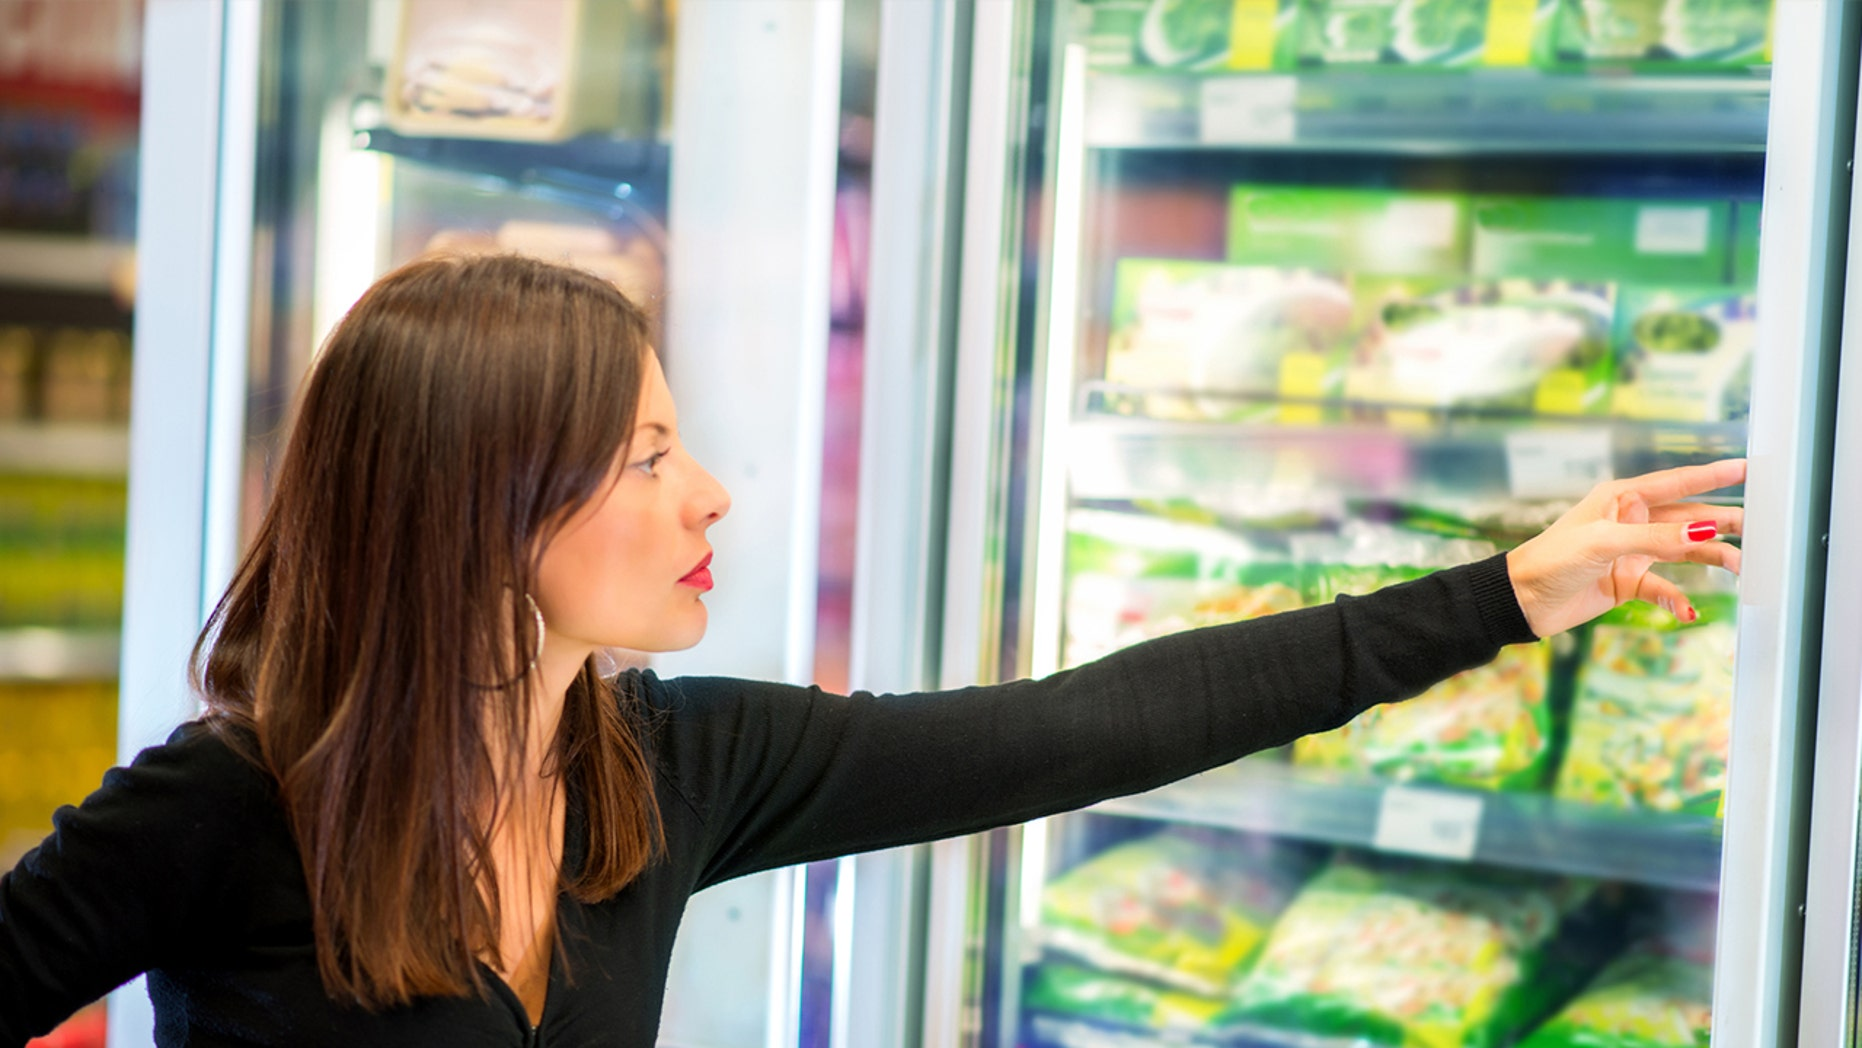 It's important to keep cold food items stored properly to prevent bacteria from spreading.